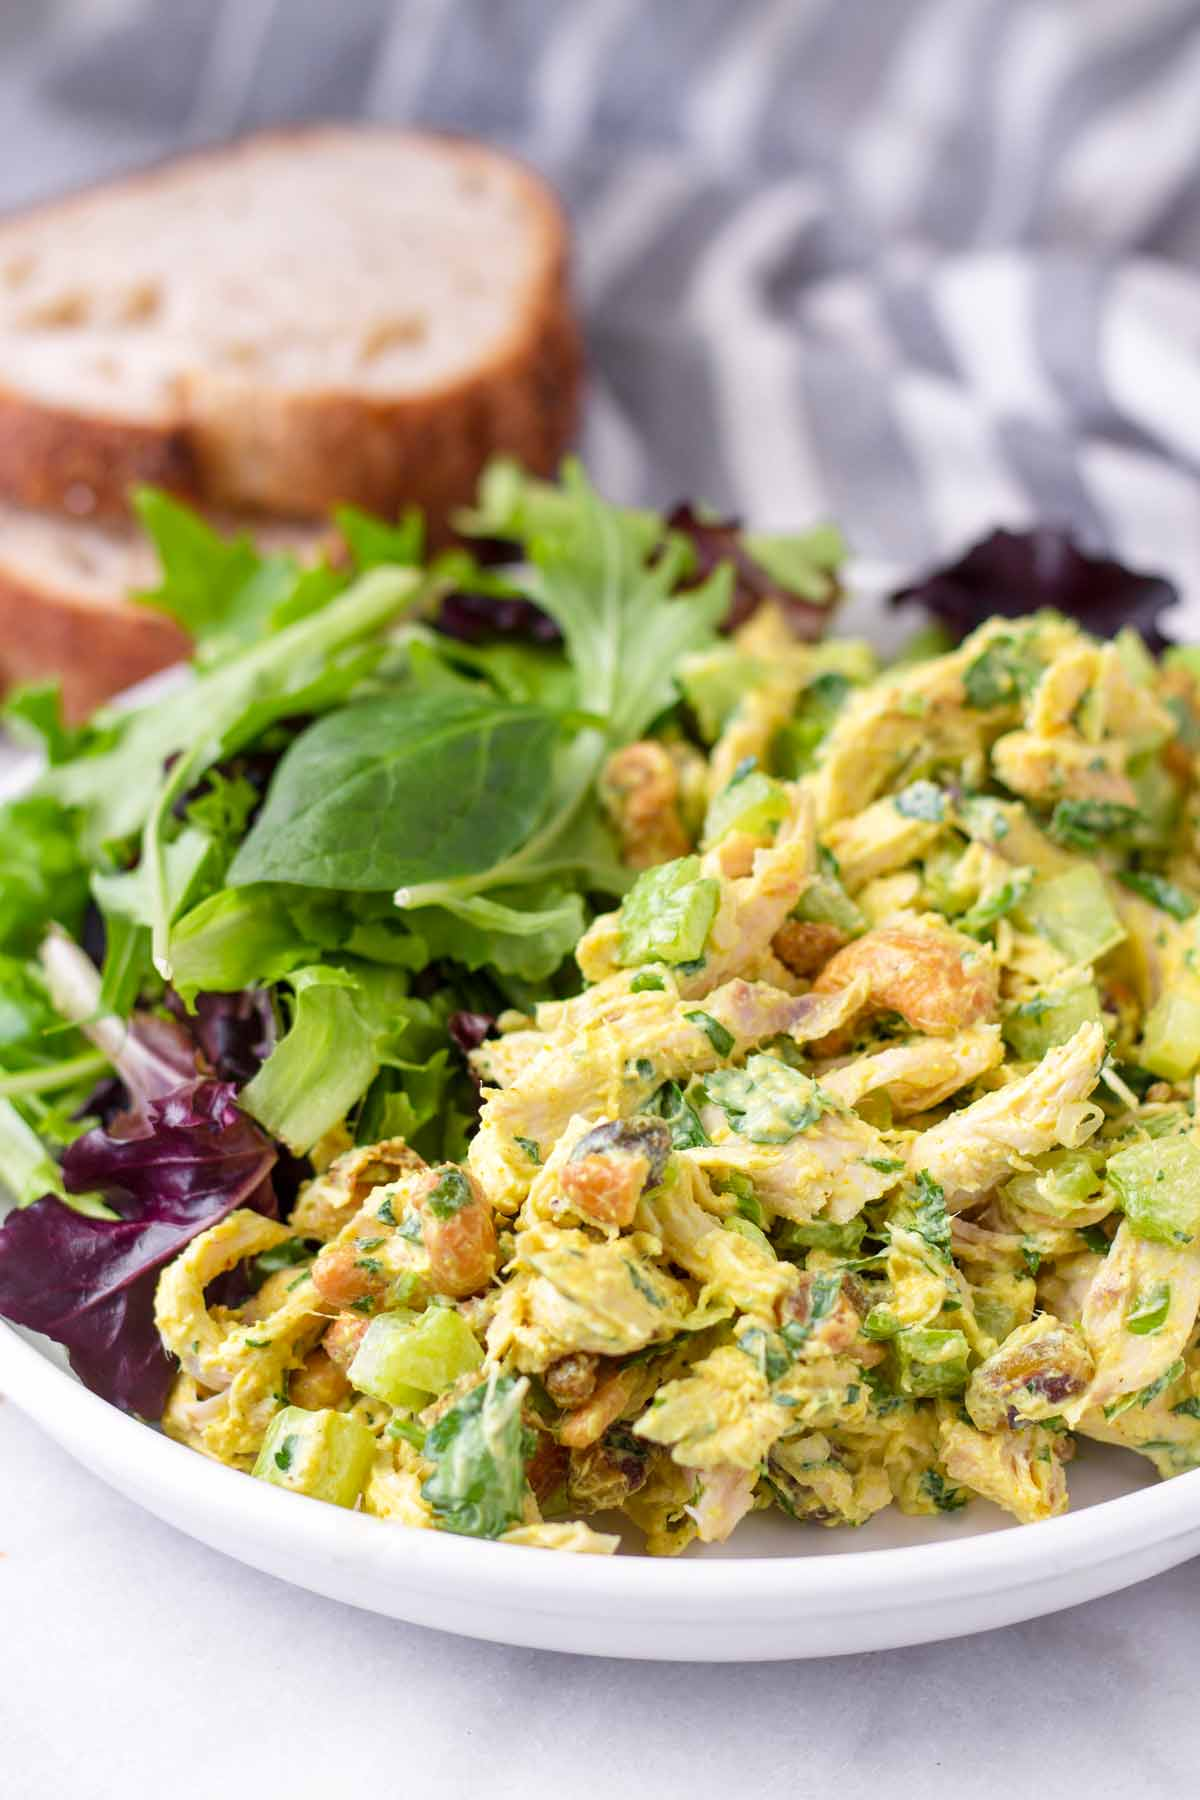 yellow golden chicken curry salad with mixed greens and bread slices